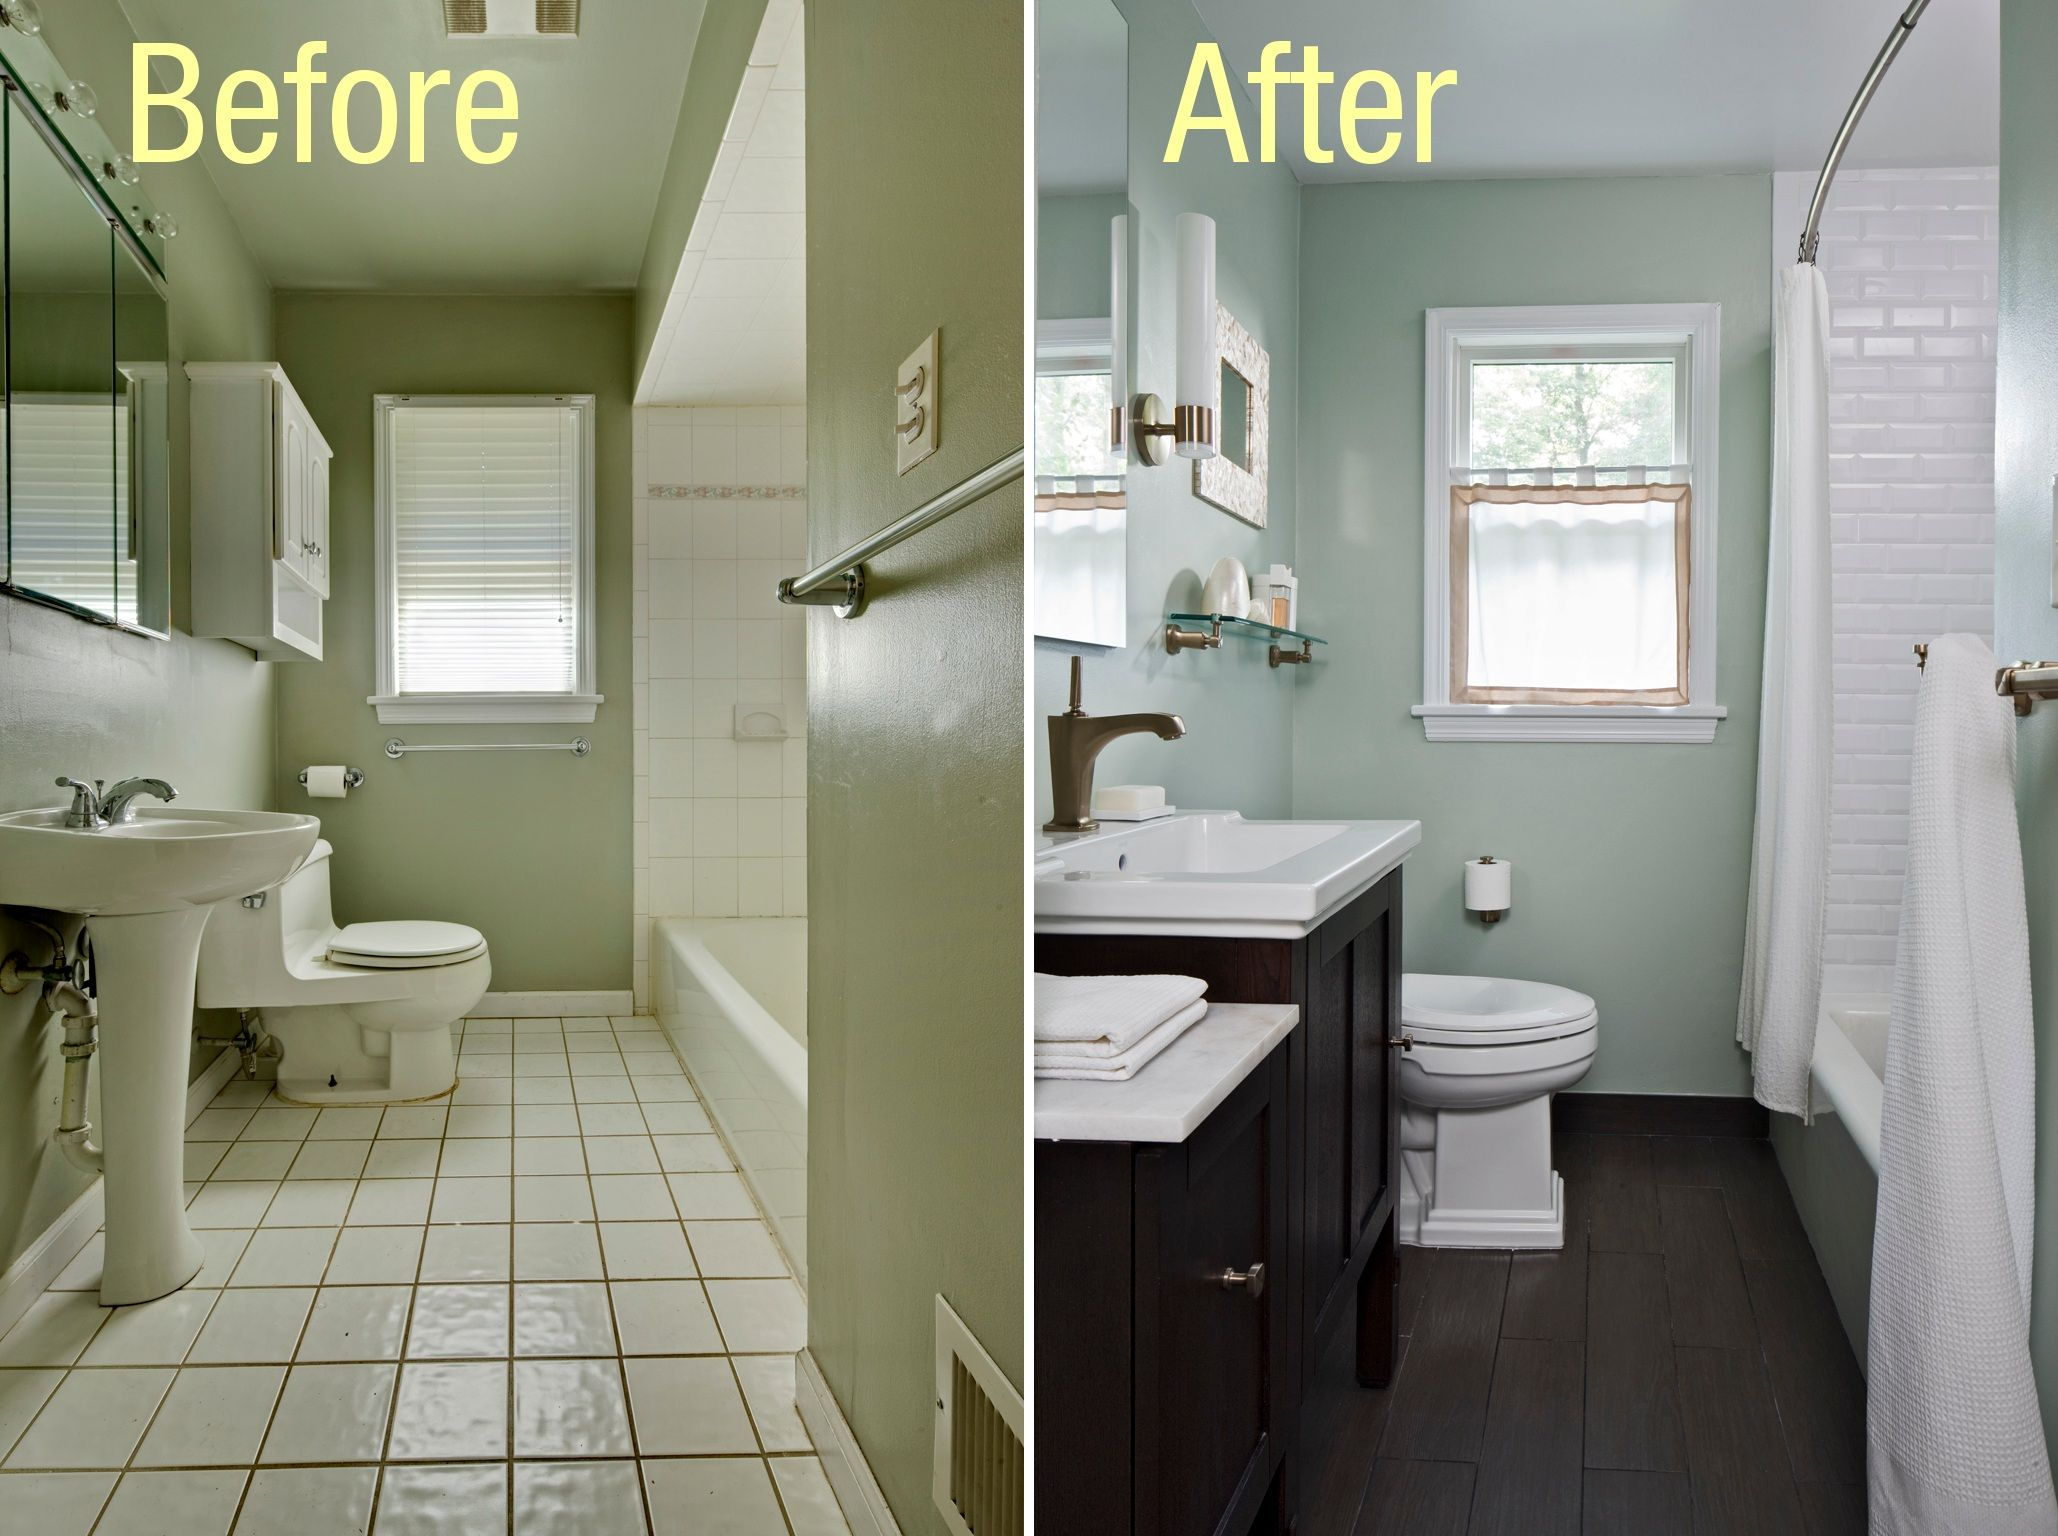 Bathroom Makeovers Wa bathroom-vanities-before-and-after-photos-of-bathroom-renovations